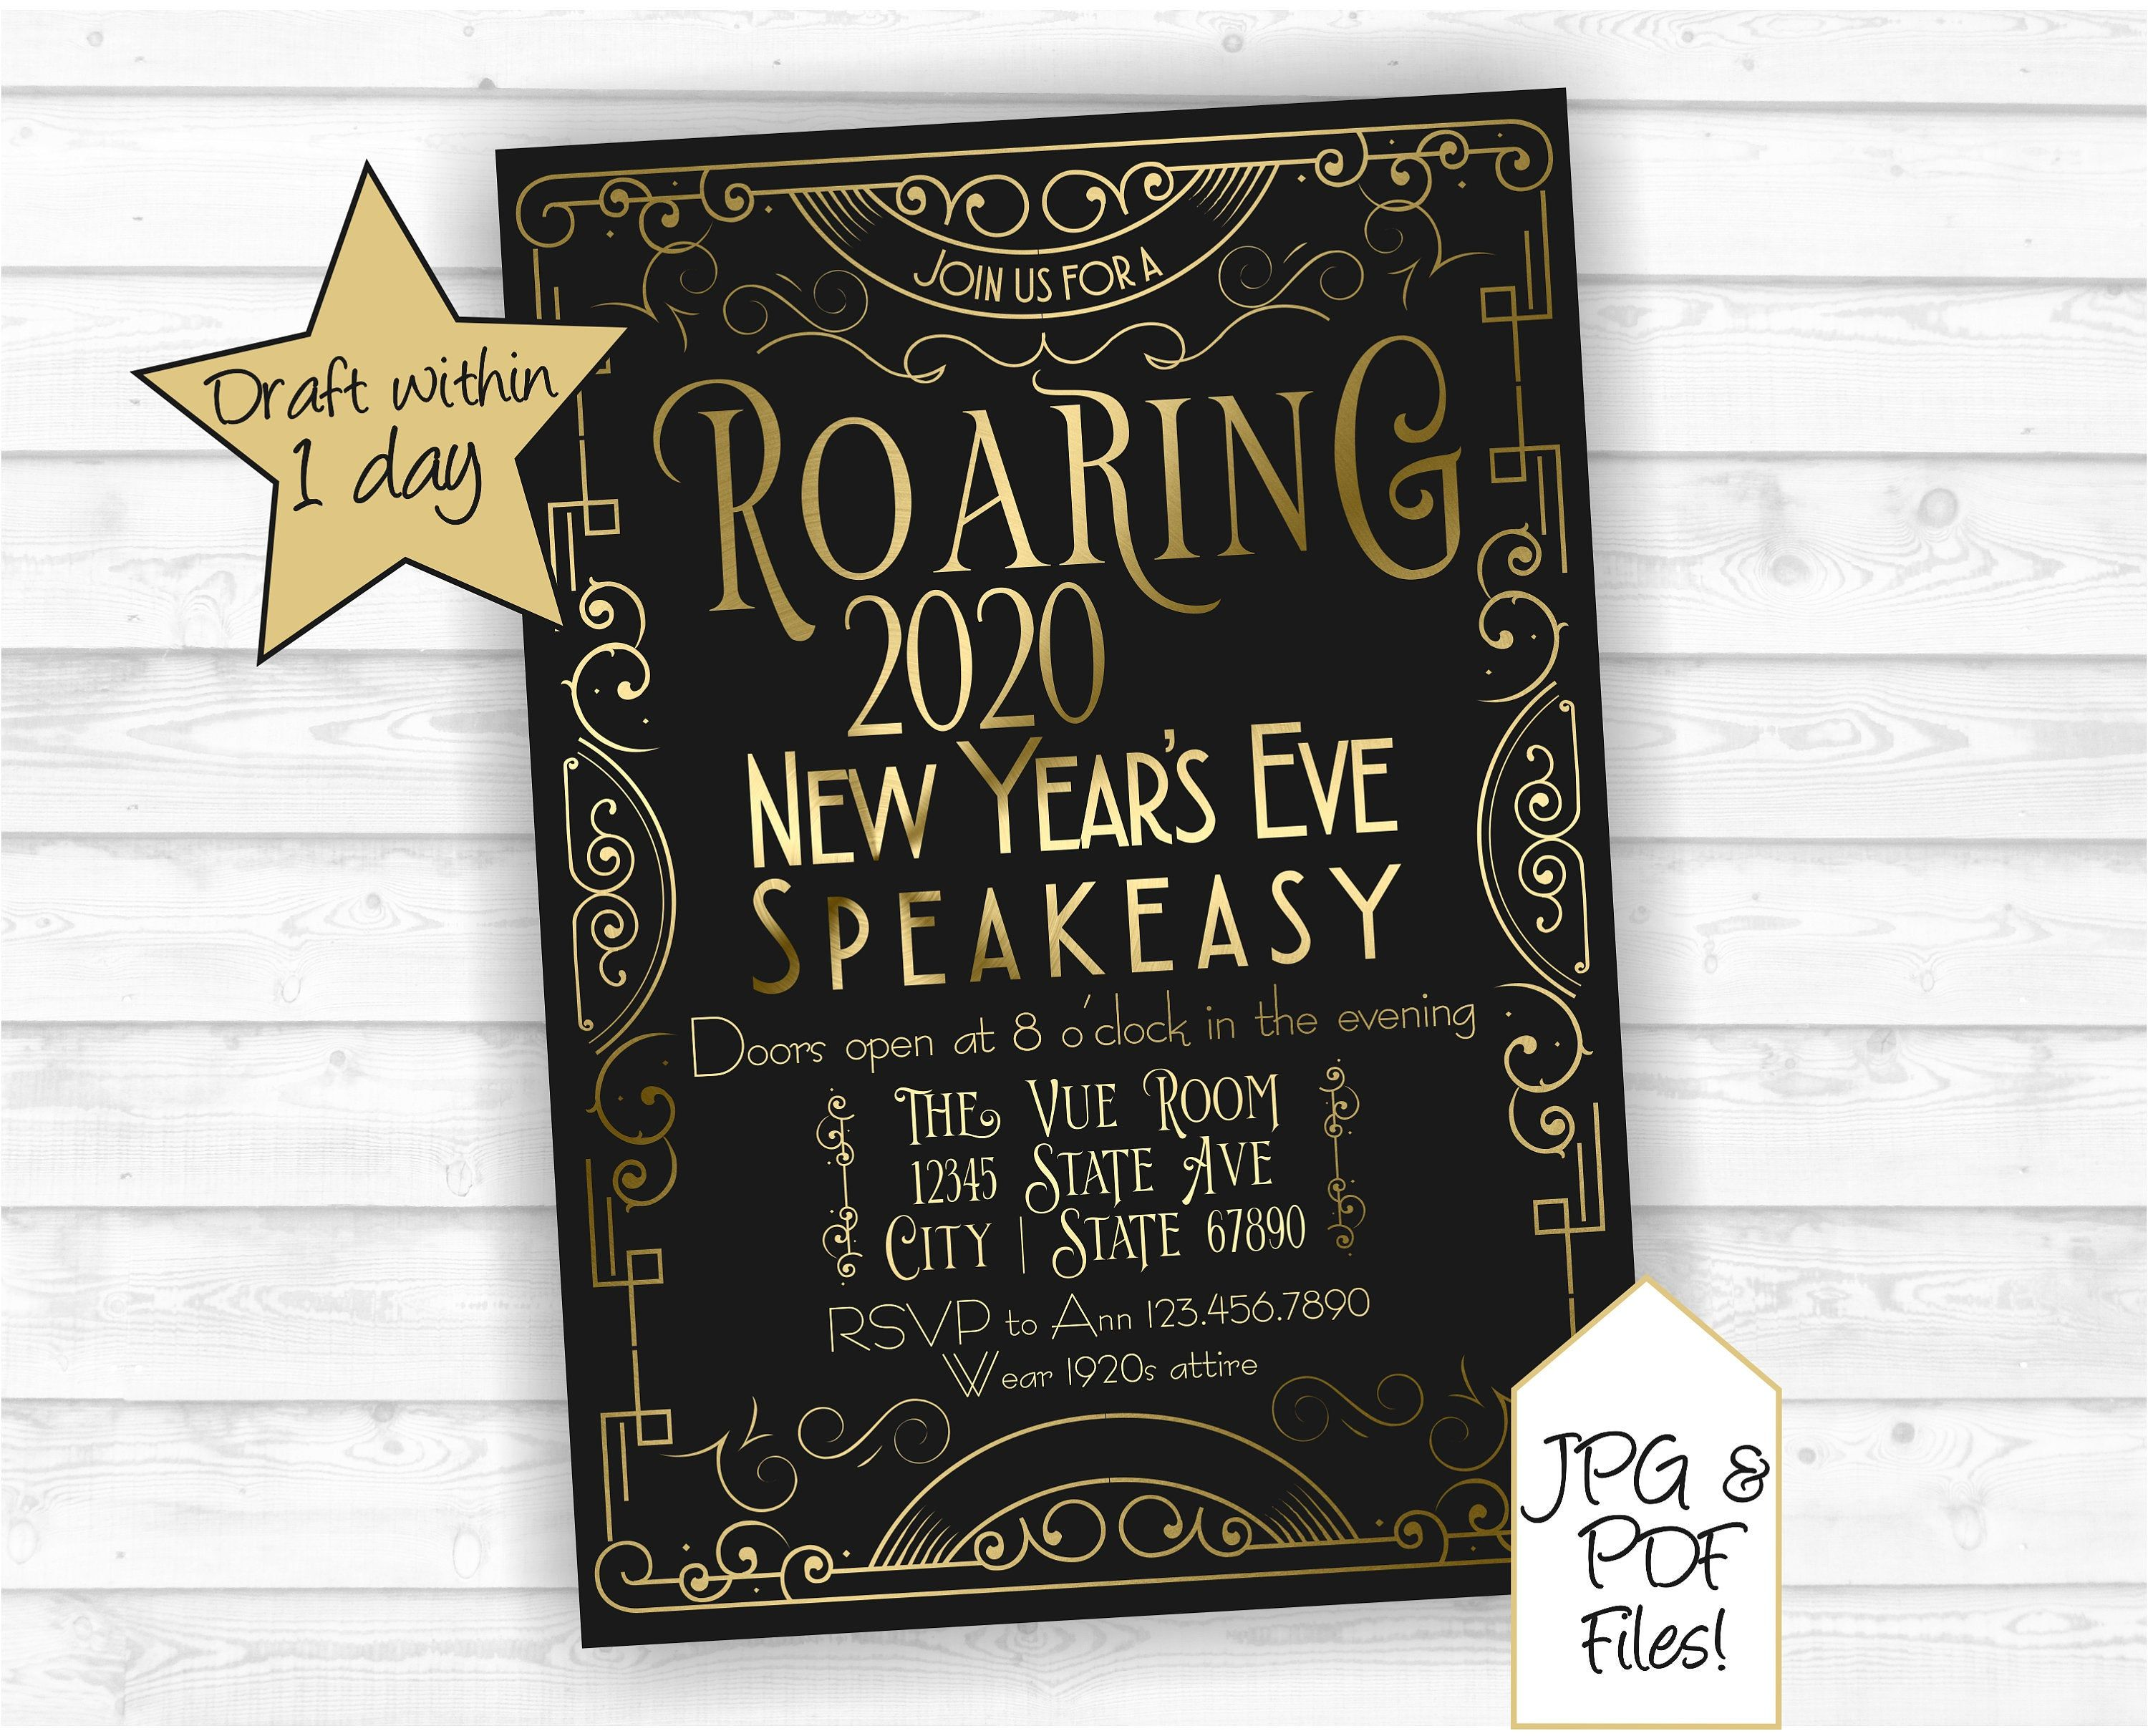 Roaring 20s New Year S Eve Party Invitations Speakeasy Etsy New Years Eve Invitations 50th Birthday Invitations Speakeasy Invitations